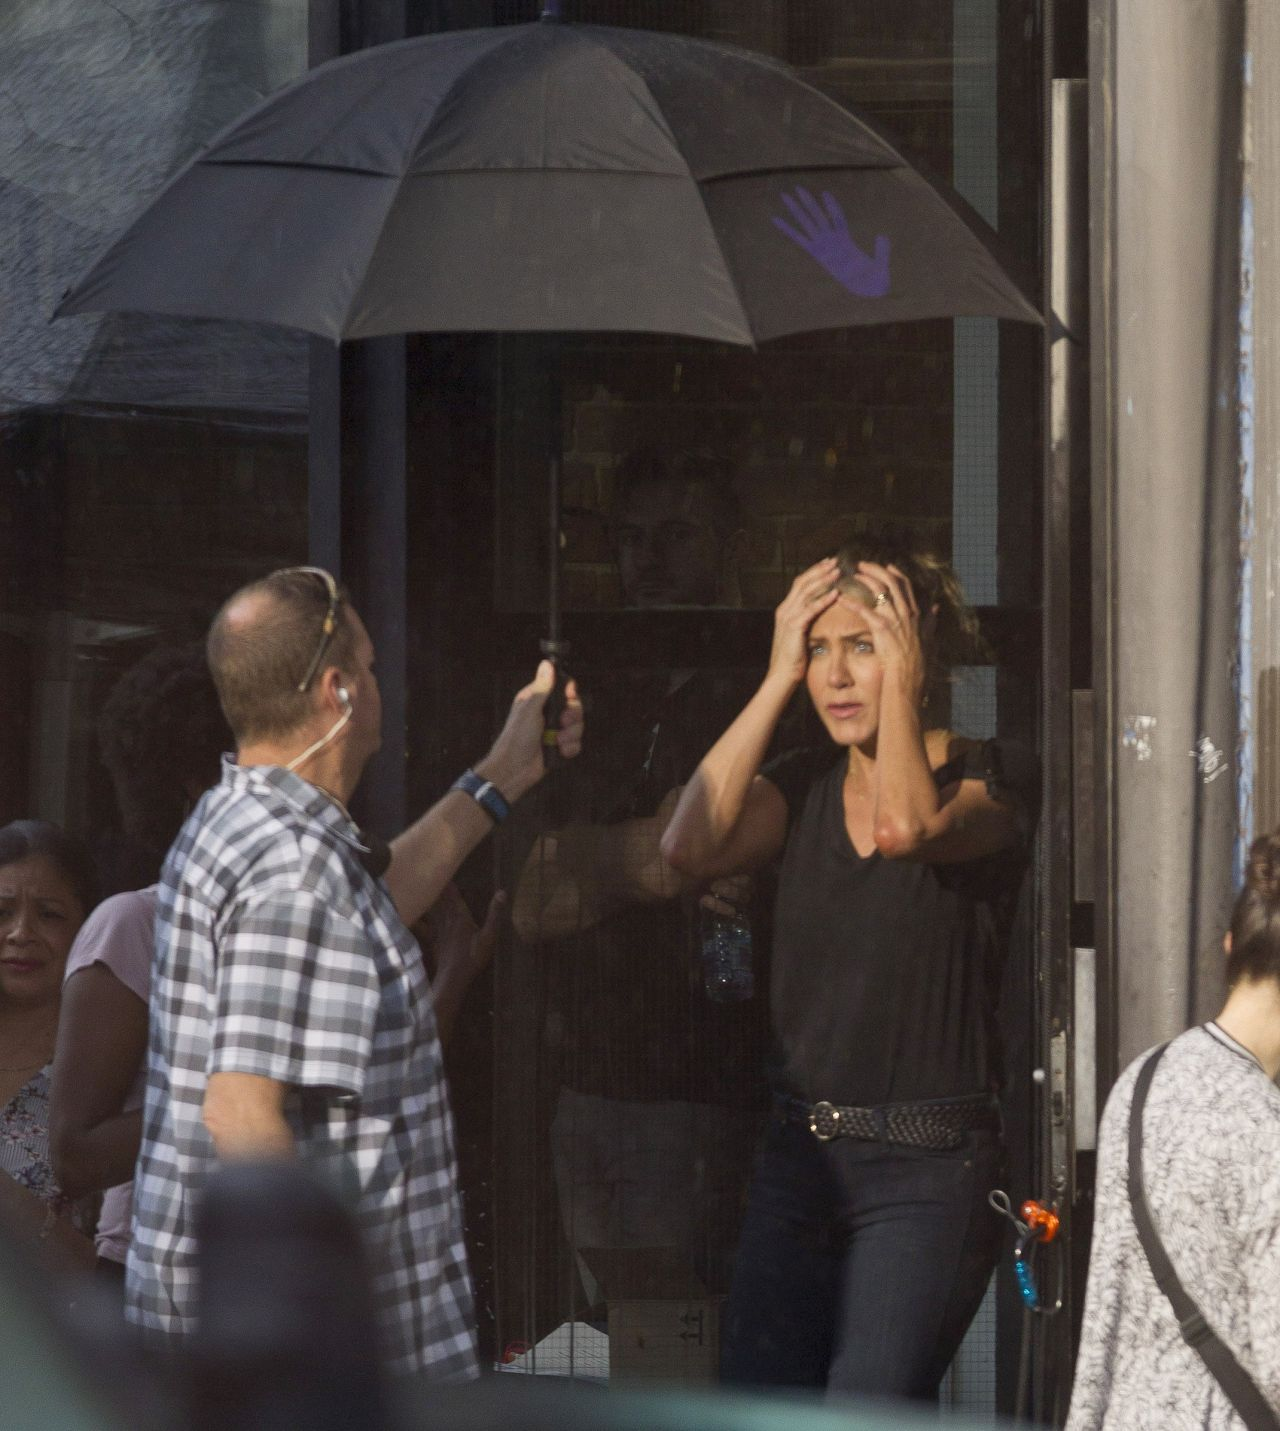 jennifer aniston quotmurder mysteryquot set in montreal 06202018